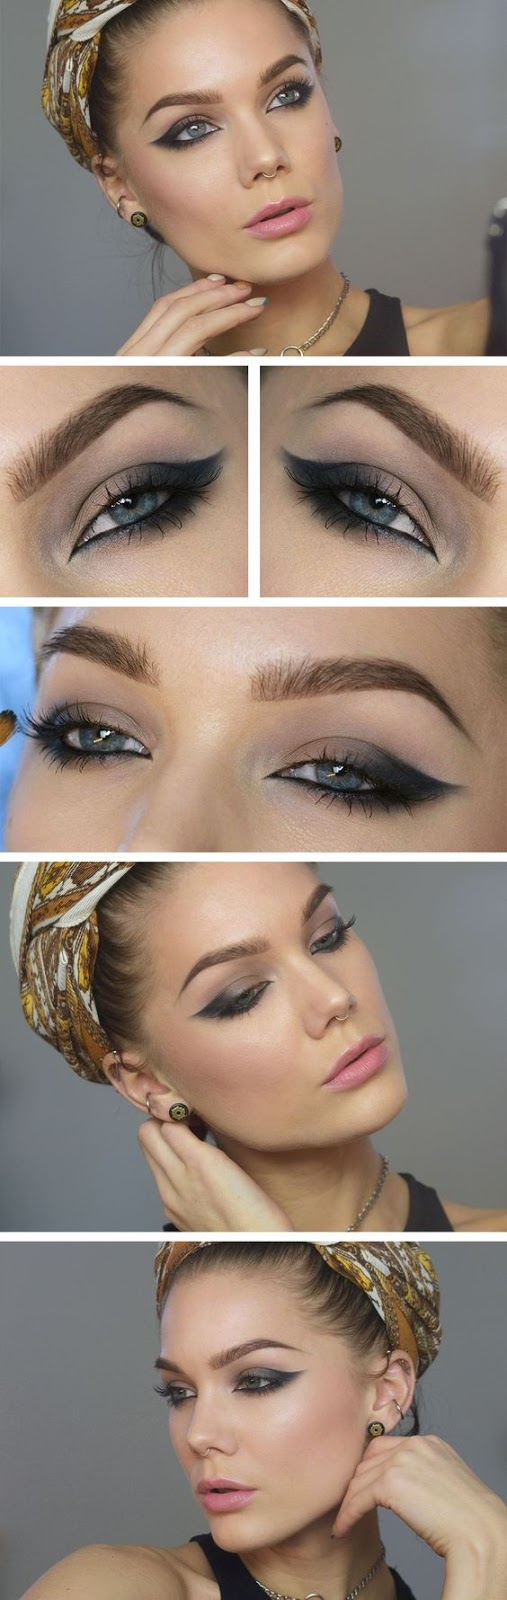 amazing boho make up idea